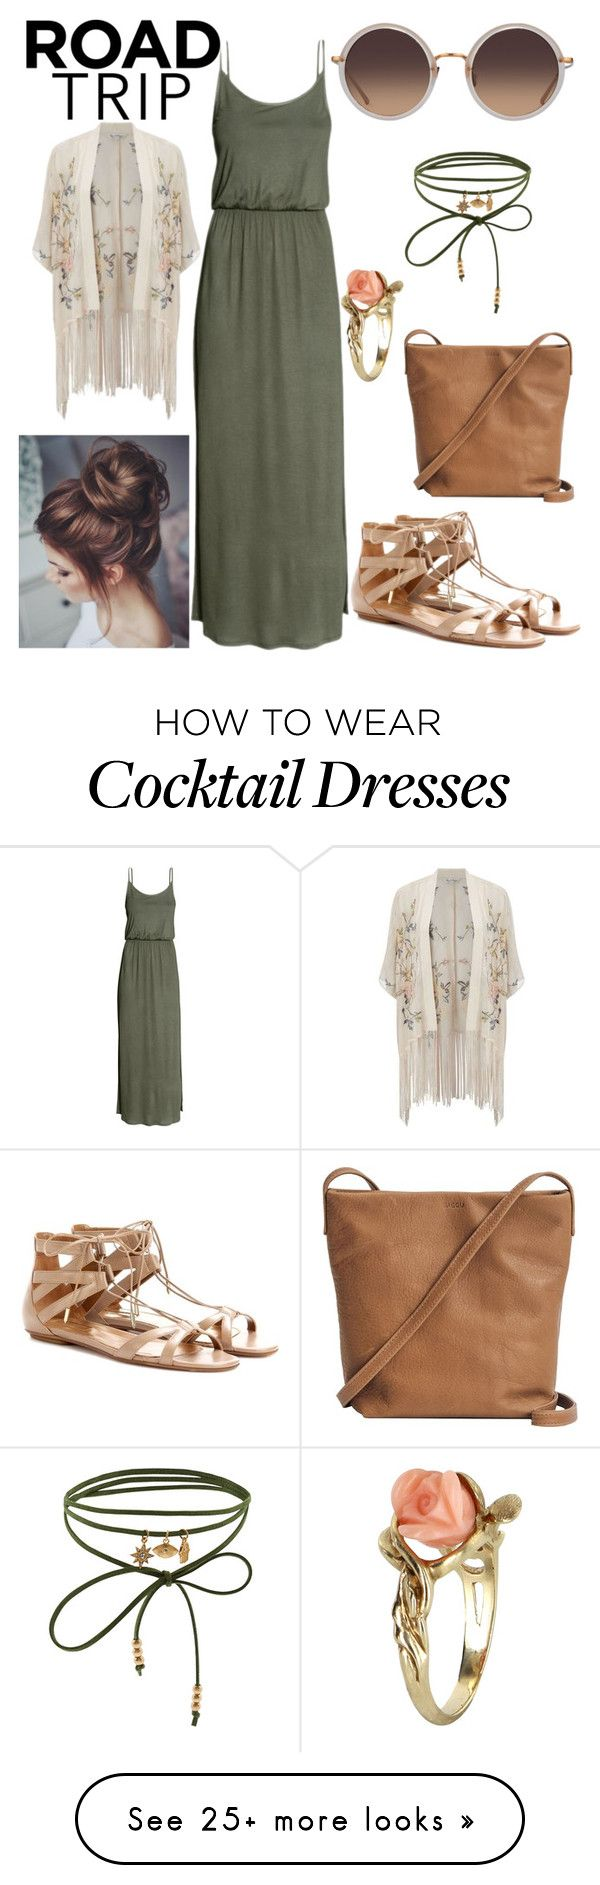 """""""Road Trip Outfit #2"""" by cmhanna93 on Polyvore featuring Miss Selfridge, Aquazzura, BAGGU, Linda Farrow, Vintage and Accessorize"""